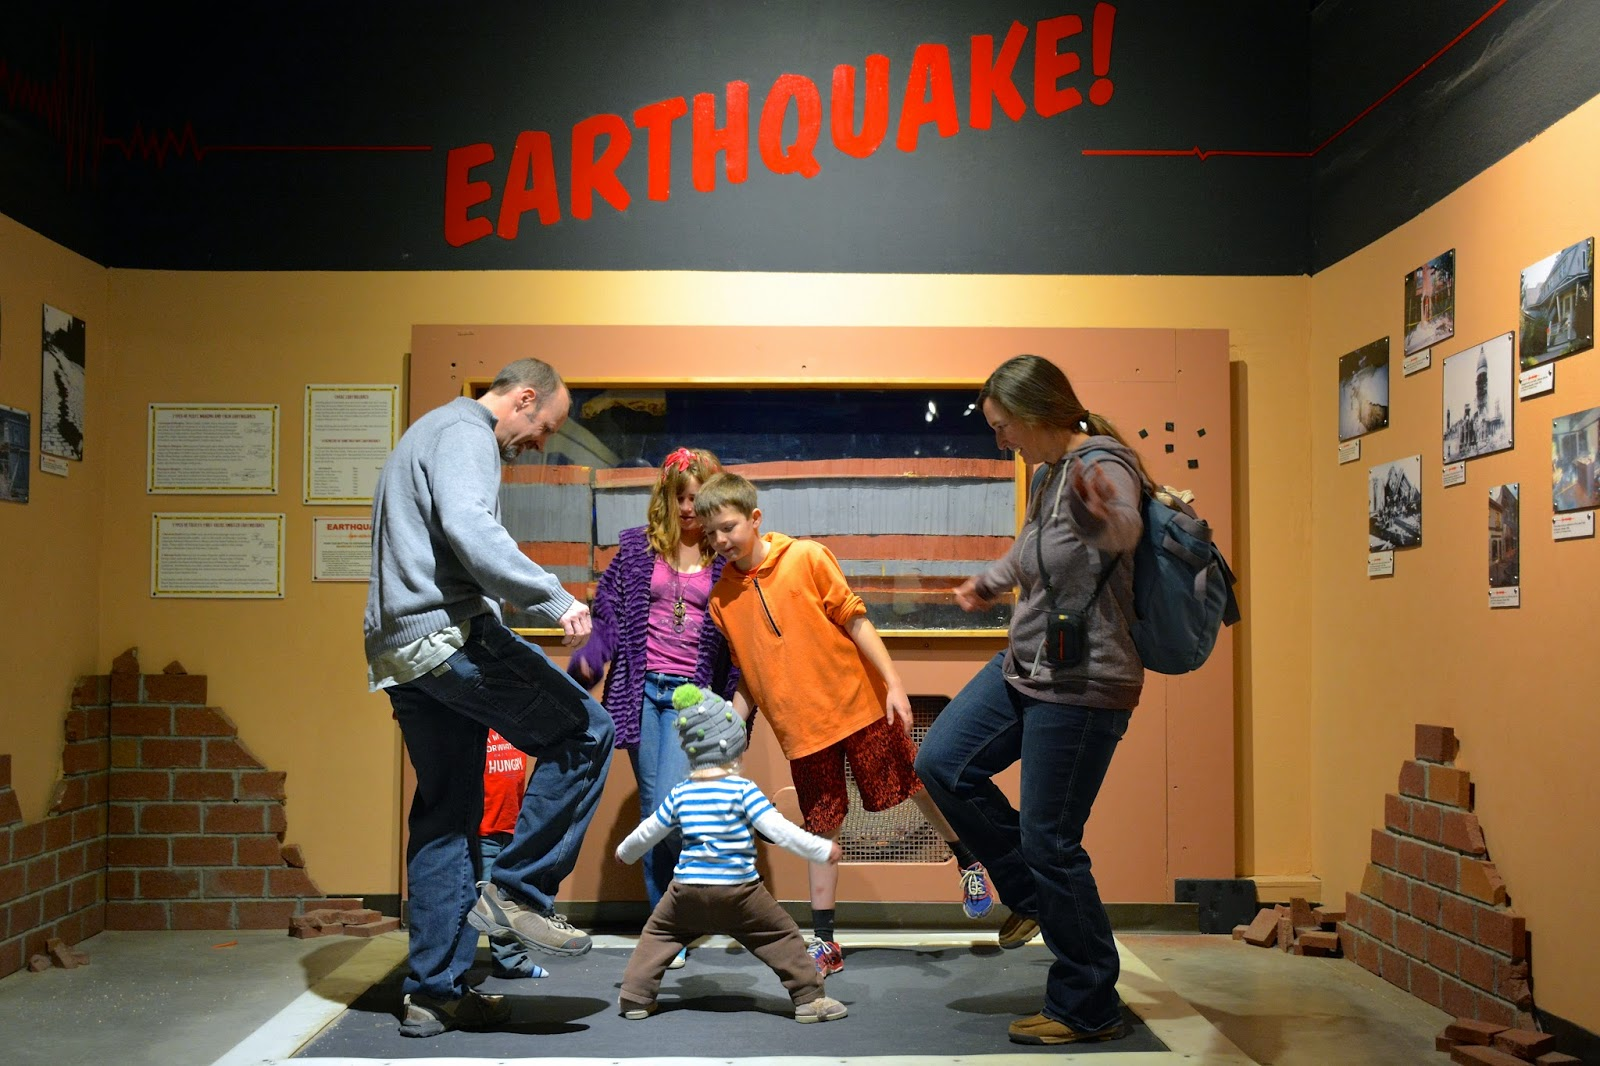 Simulated earthquake in a dinosaur museum